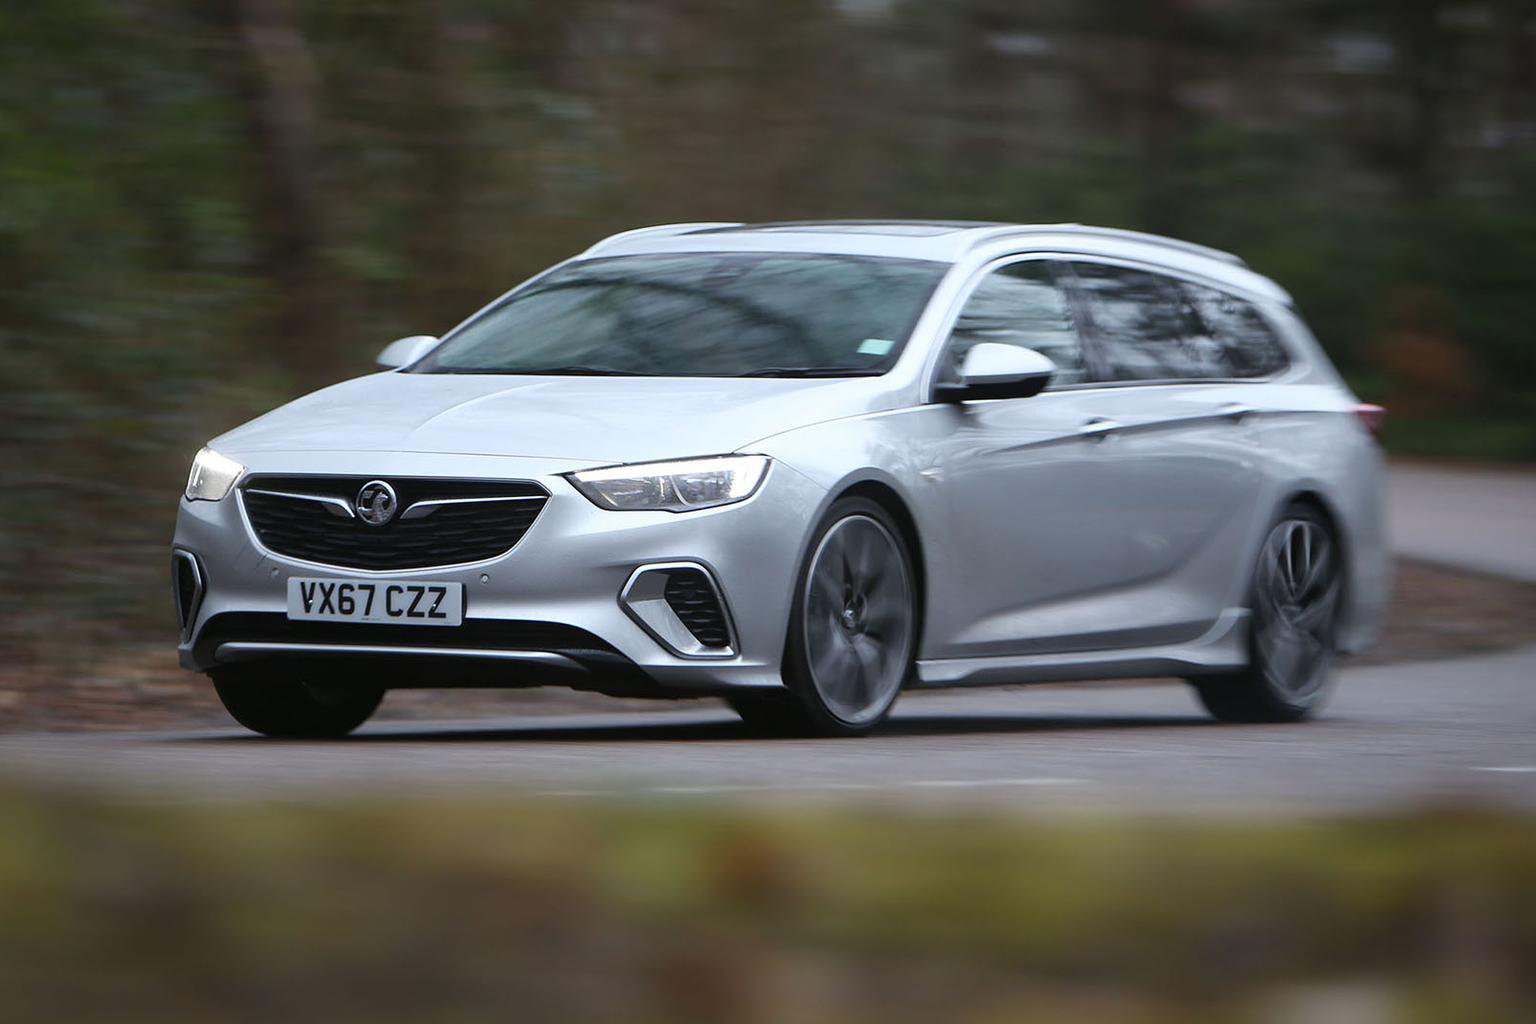 2018 Vauxhall Insignia Sports Tourer GSi review - verdict